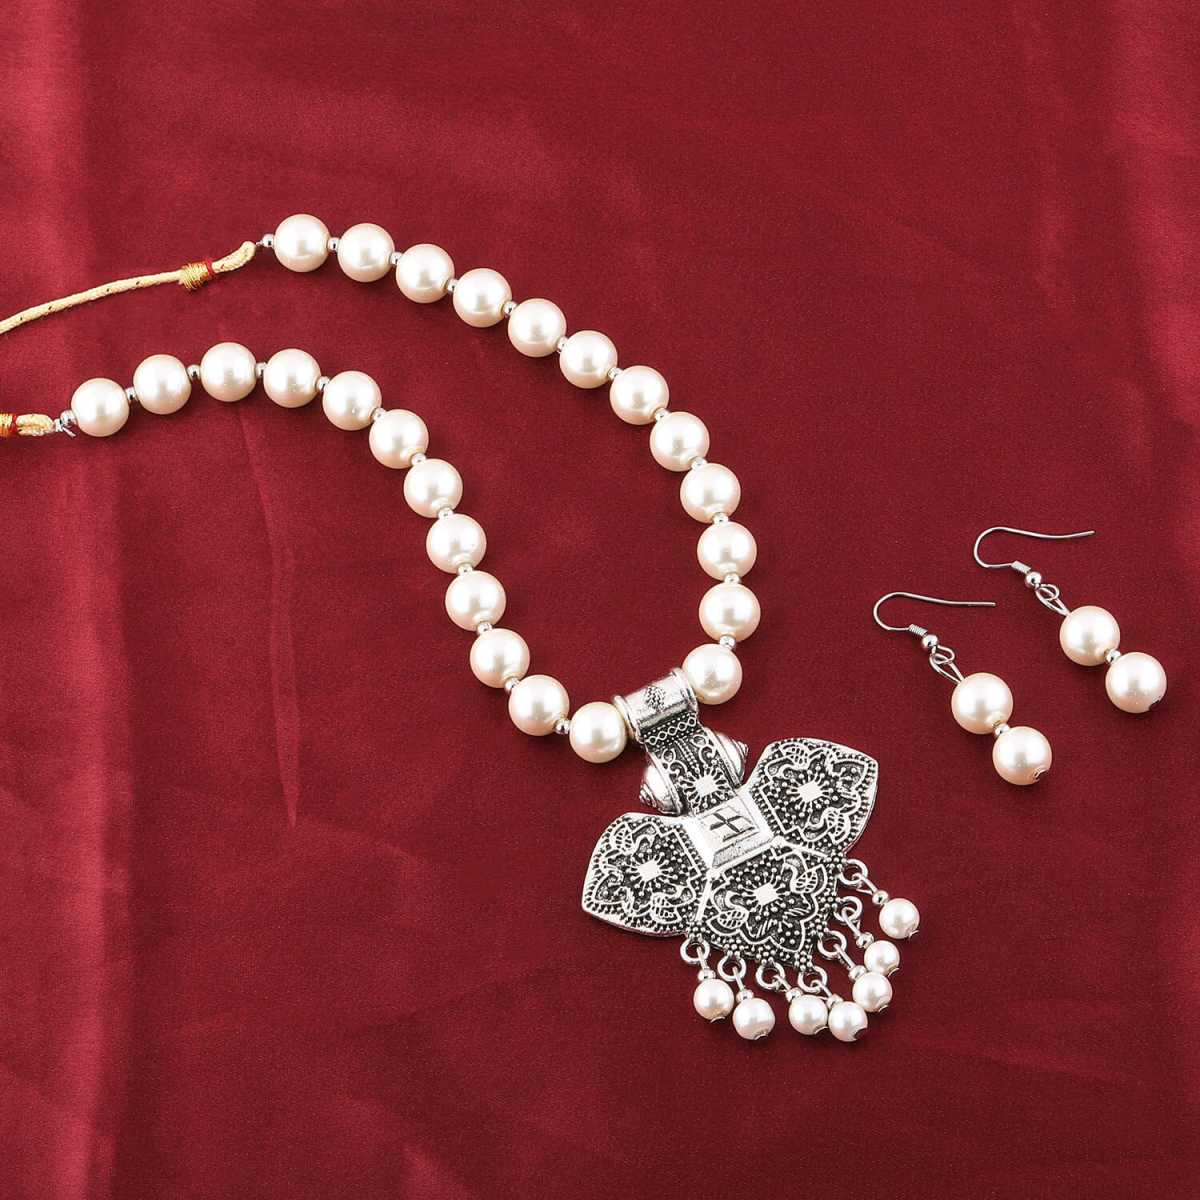 Exclusive Oxidised Pendant White Pearl Jewellery set for Women